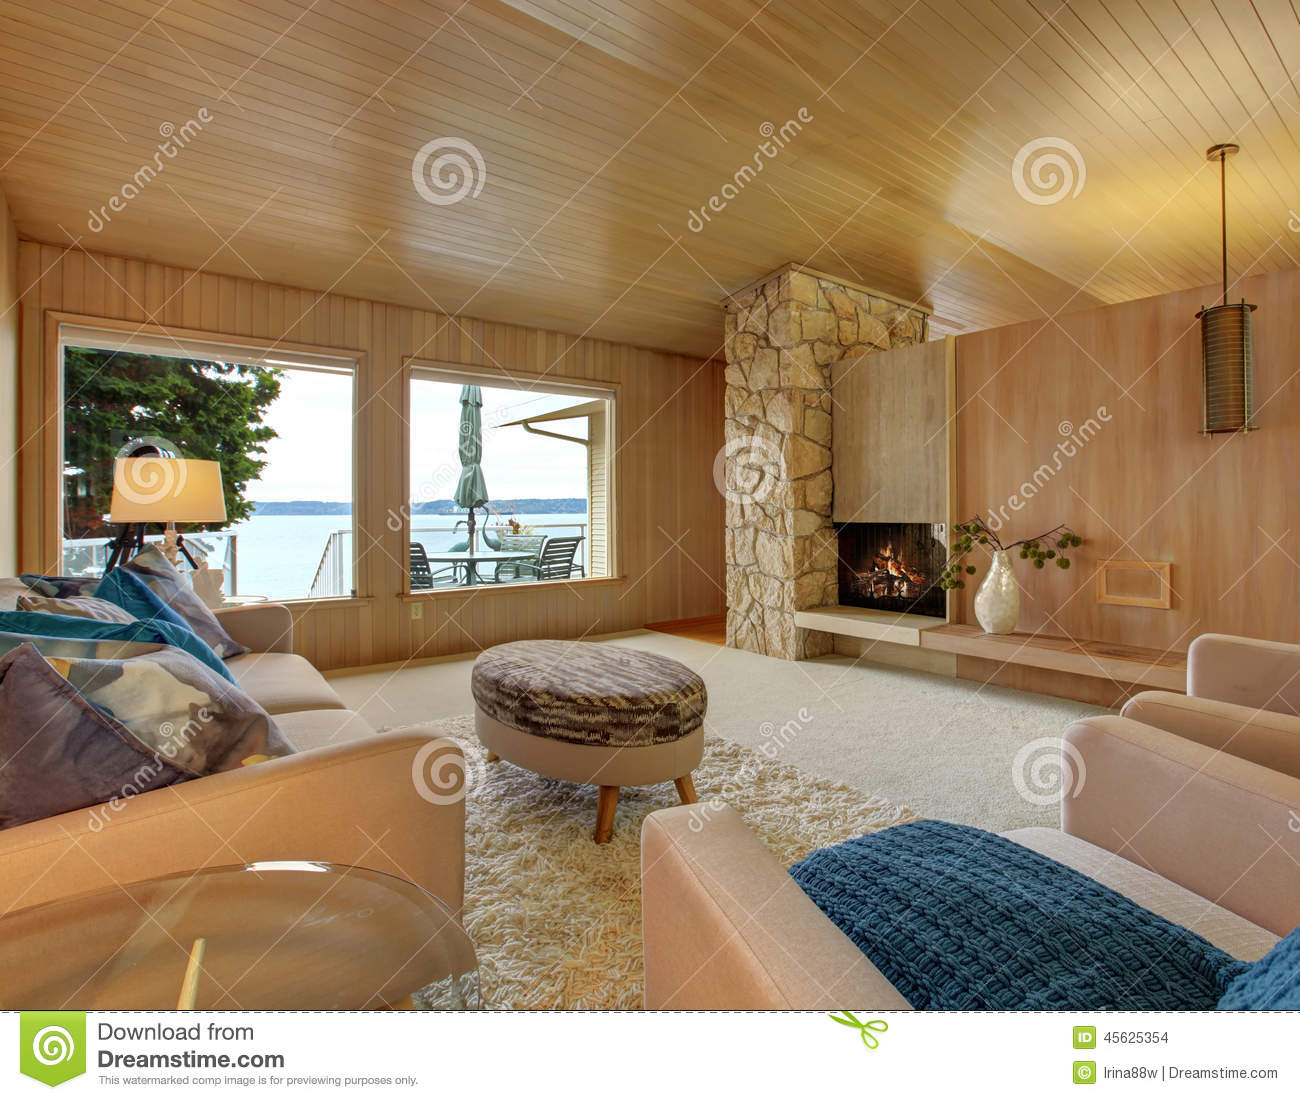 Beautiful House Interior With Wooden Plank Trim And